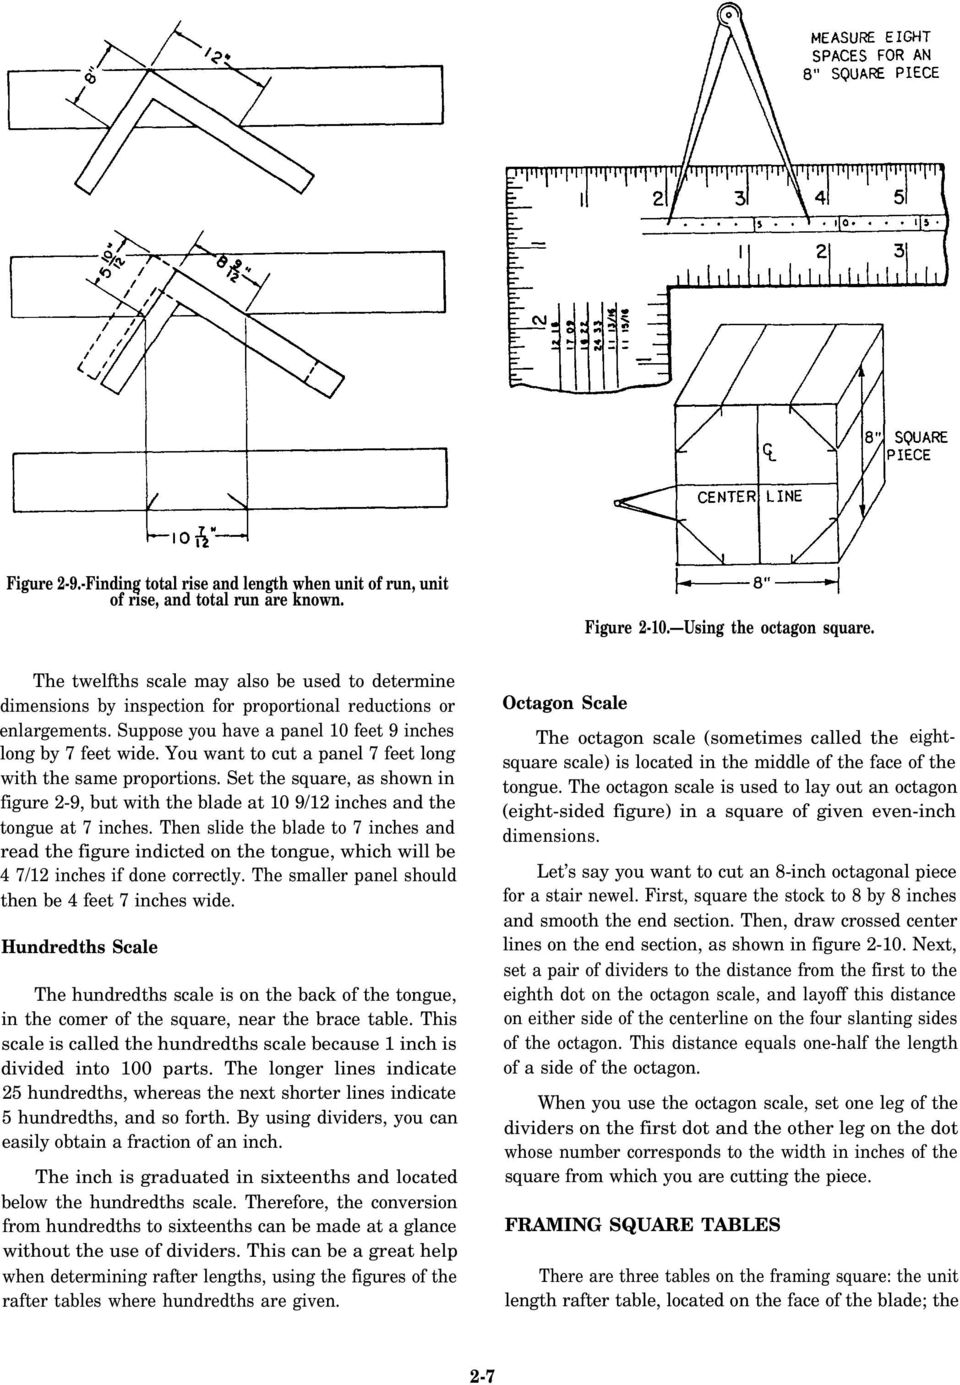 CHAPTER 2 ROOF FRAMING - PDF